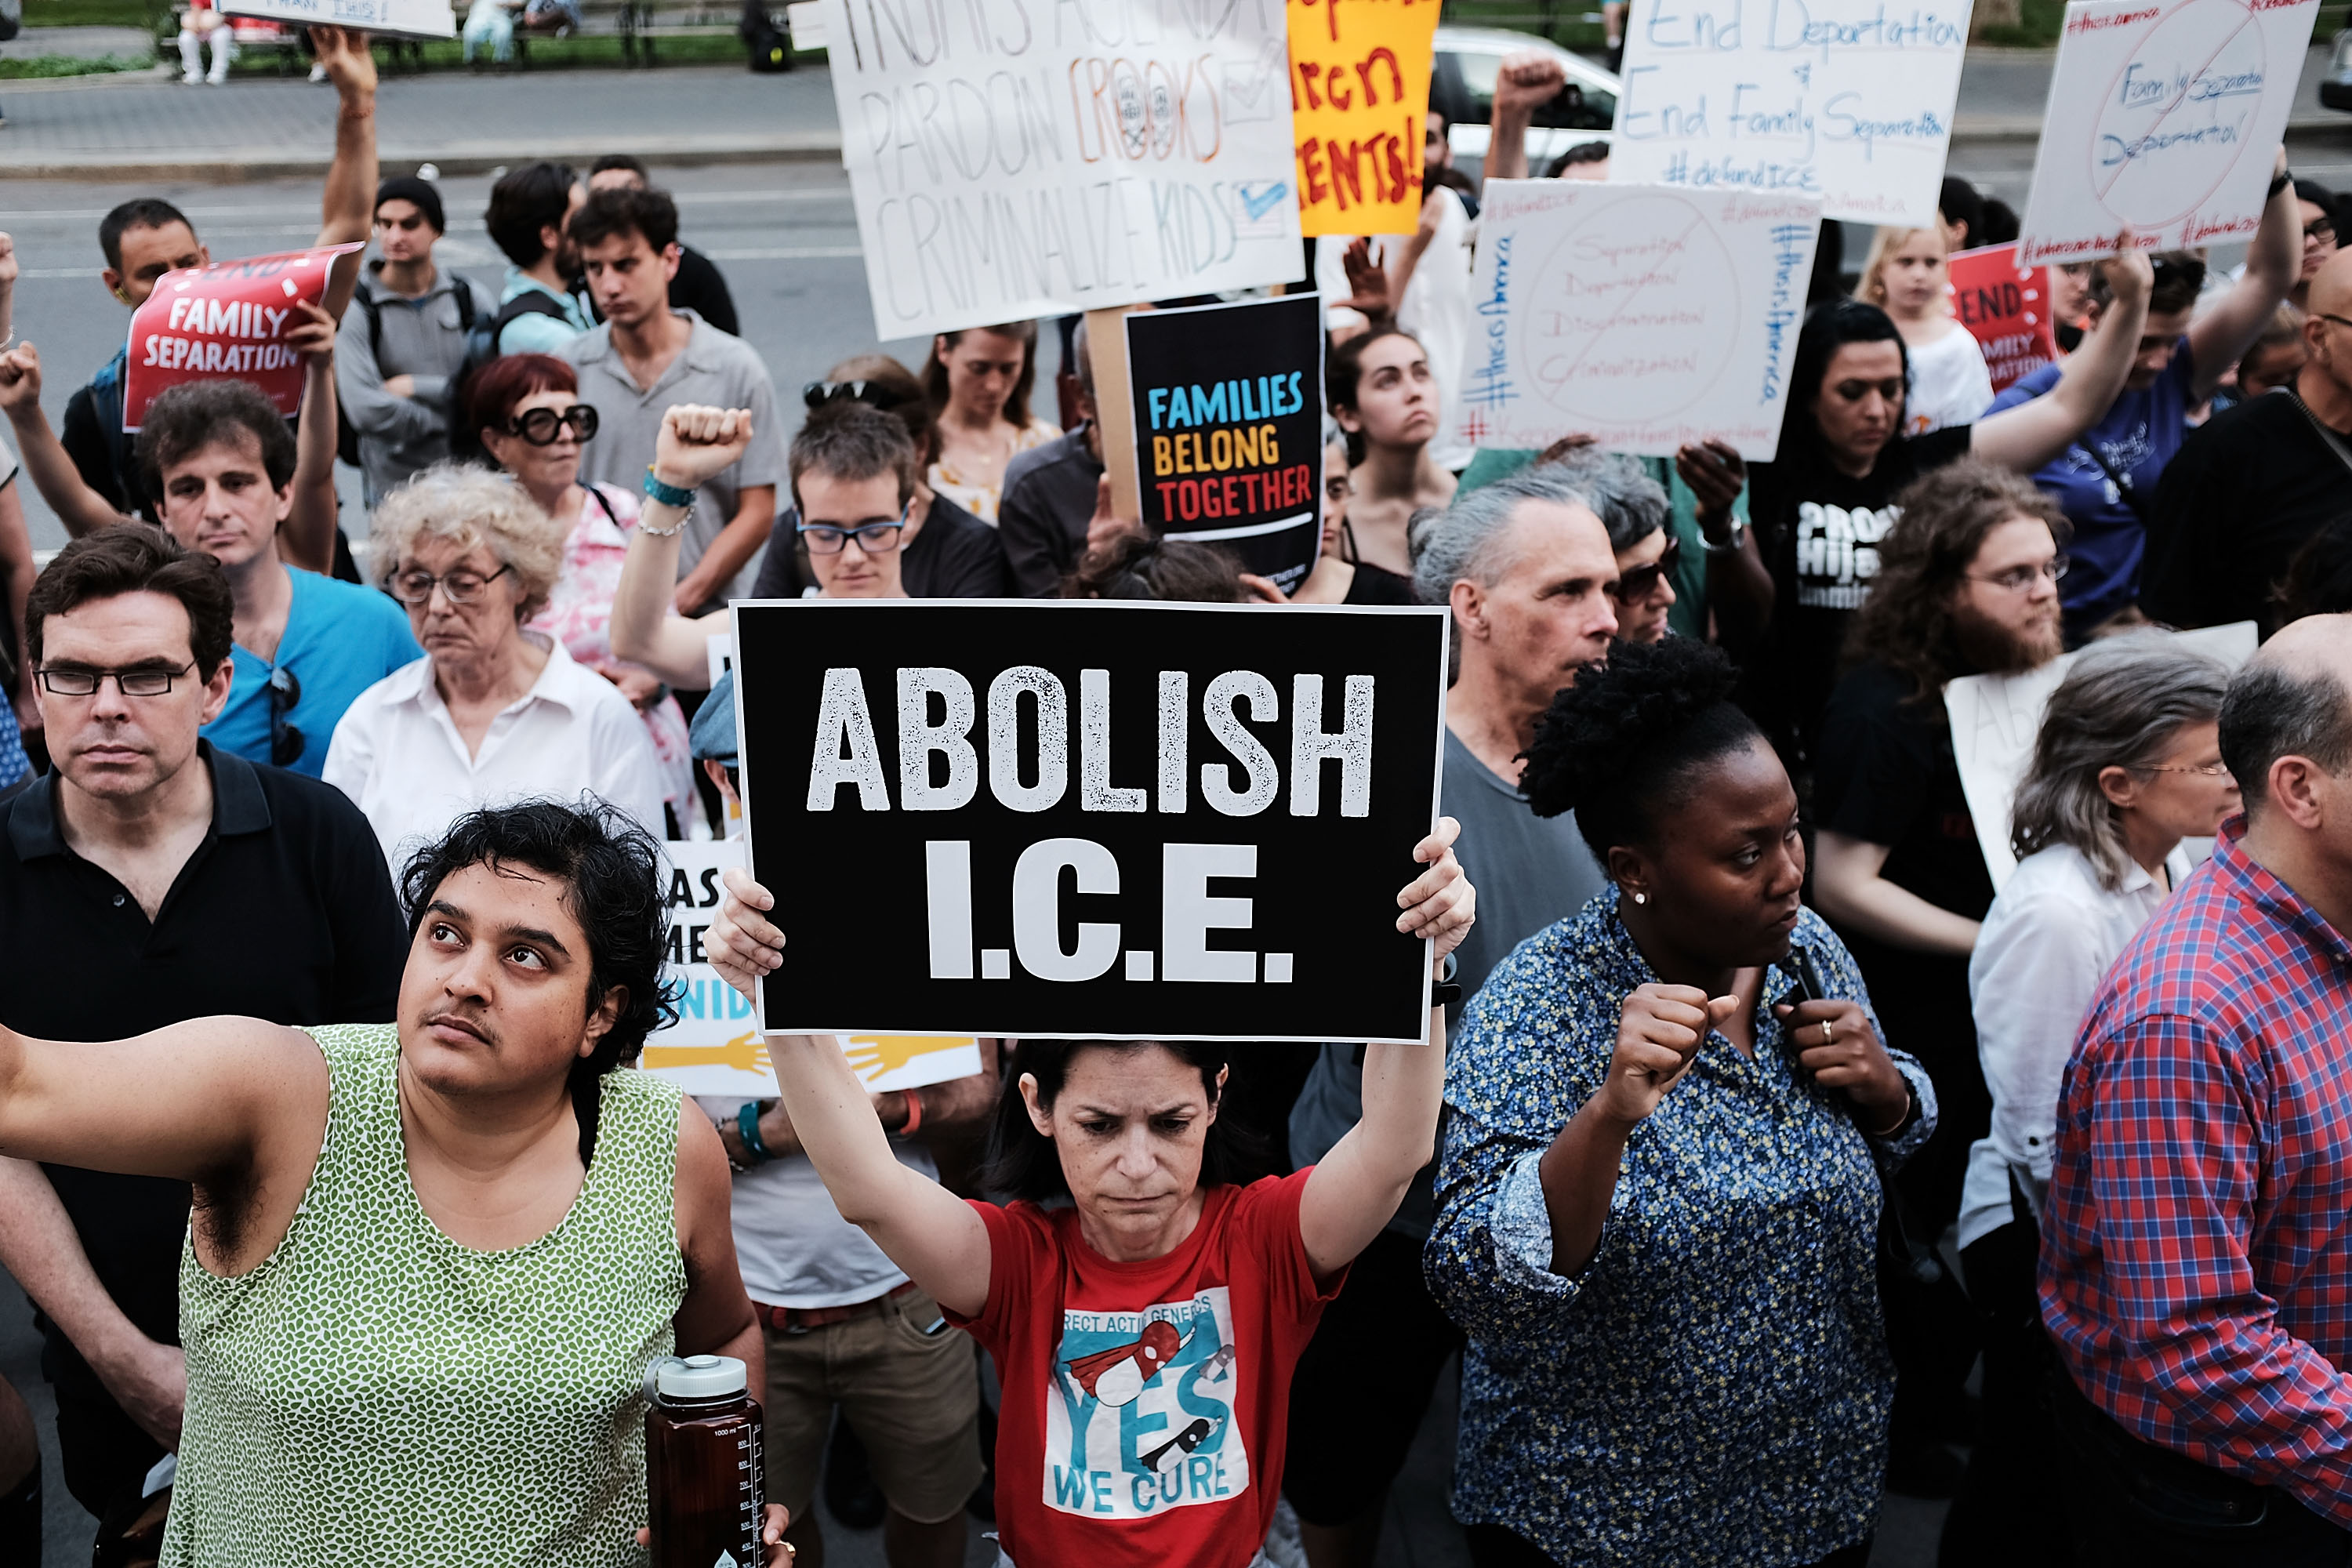 Immigrant rights advocates and others participate in rally and an demonstration at the Federal Building in lower Manhattan against the Trump administration's policy that enables federal agents to take migrant children away from their parents at the border on June 1, 2018 in New York City. (Getty Images)